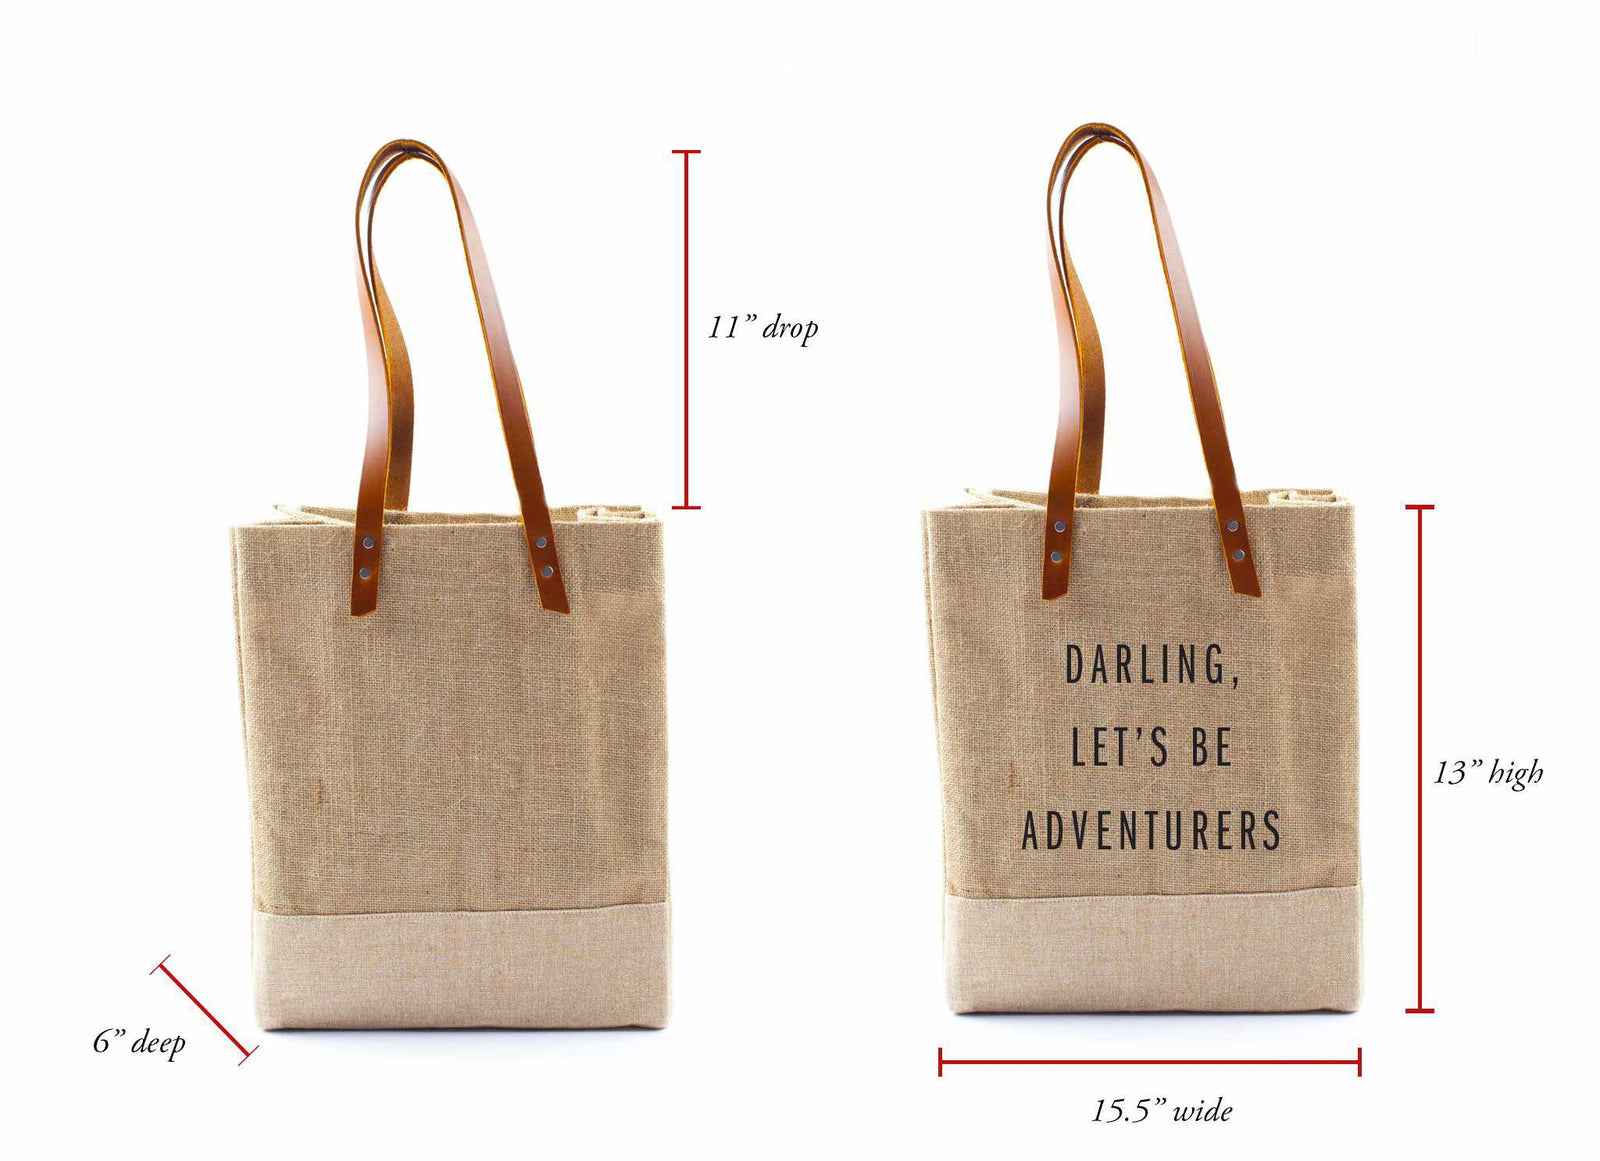 'Darling, Let's Be Adventurers' Wine Tote, through Dec. 15 Only